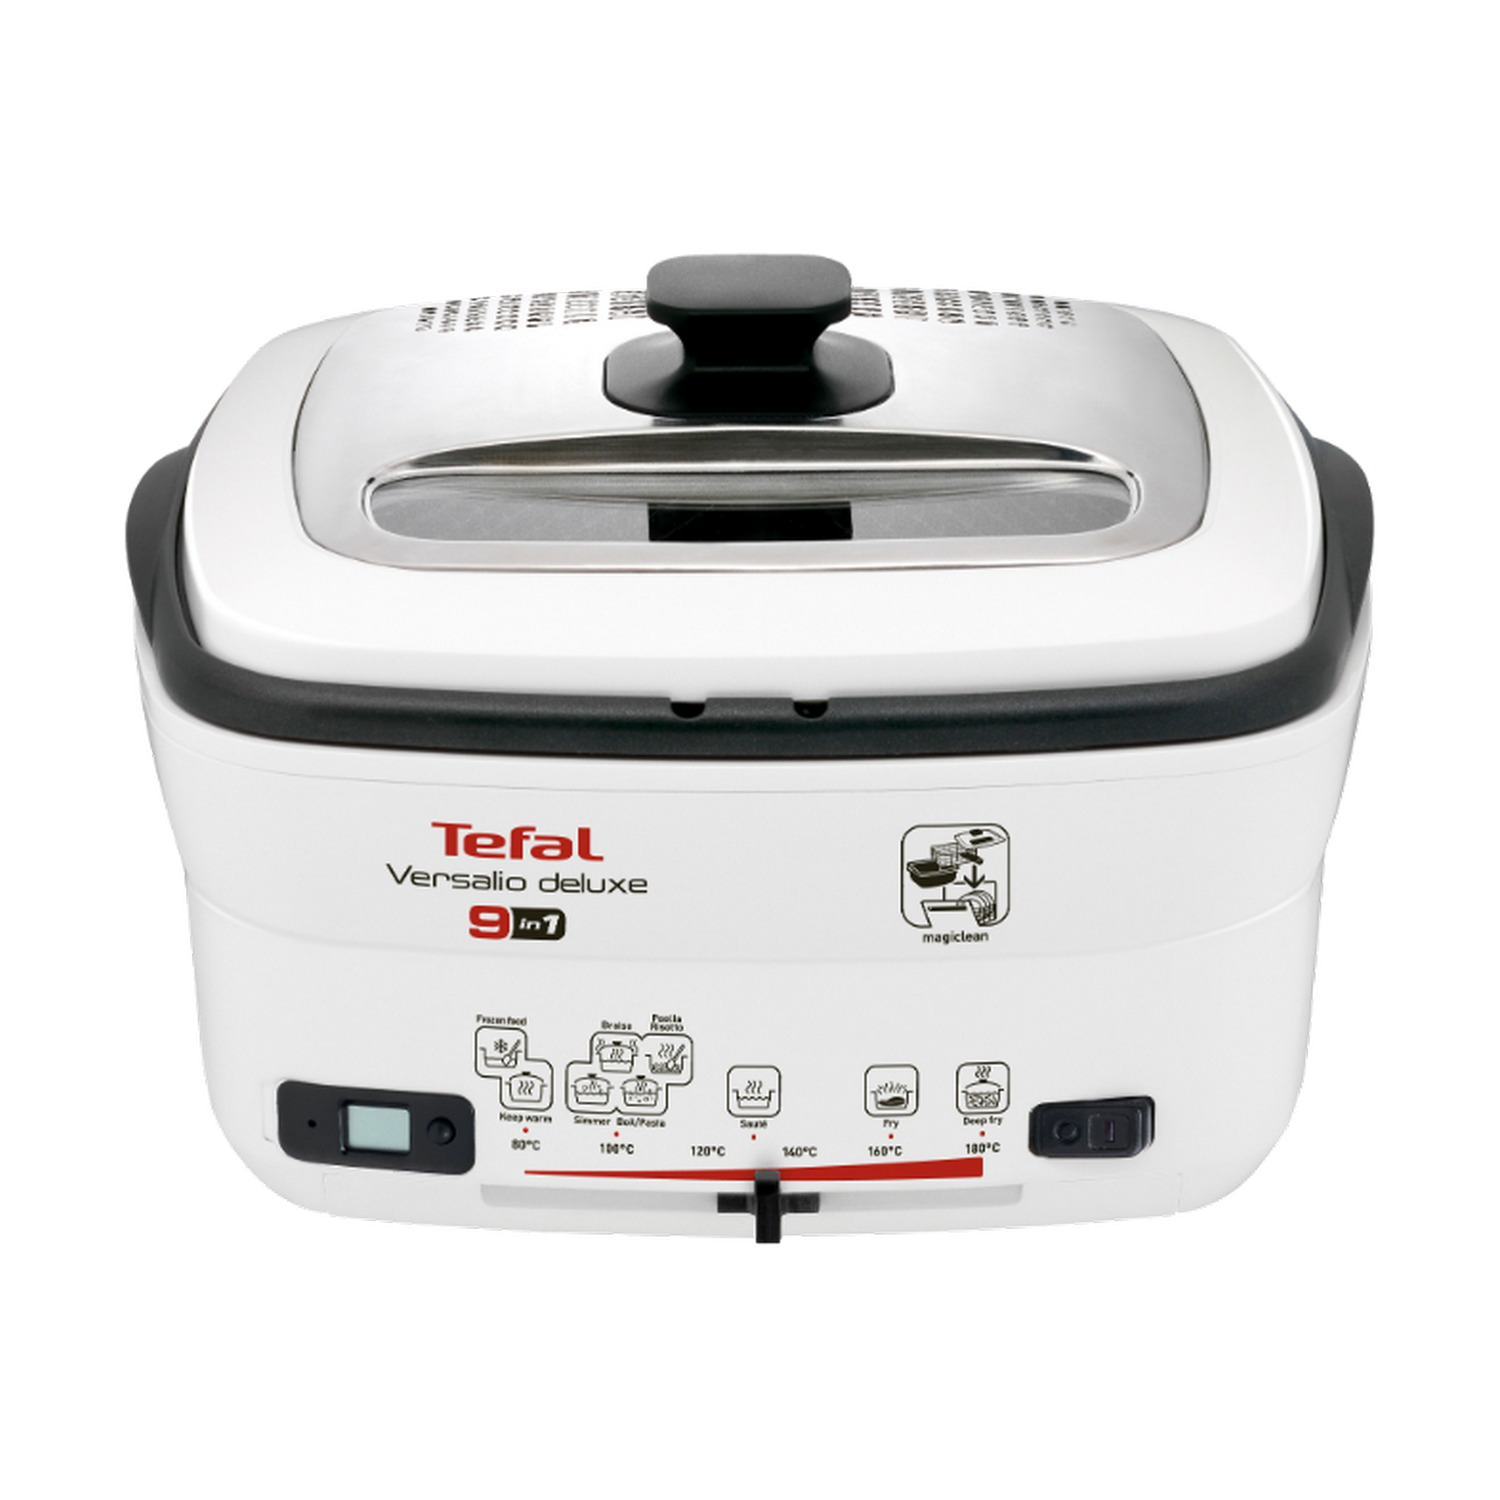 FR4950 Versalio Deluxe 9in1 Multifunktions Friteuse